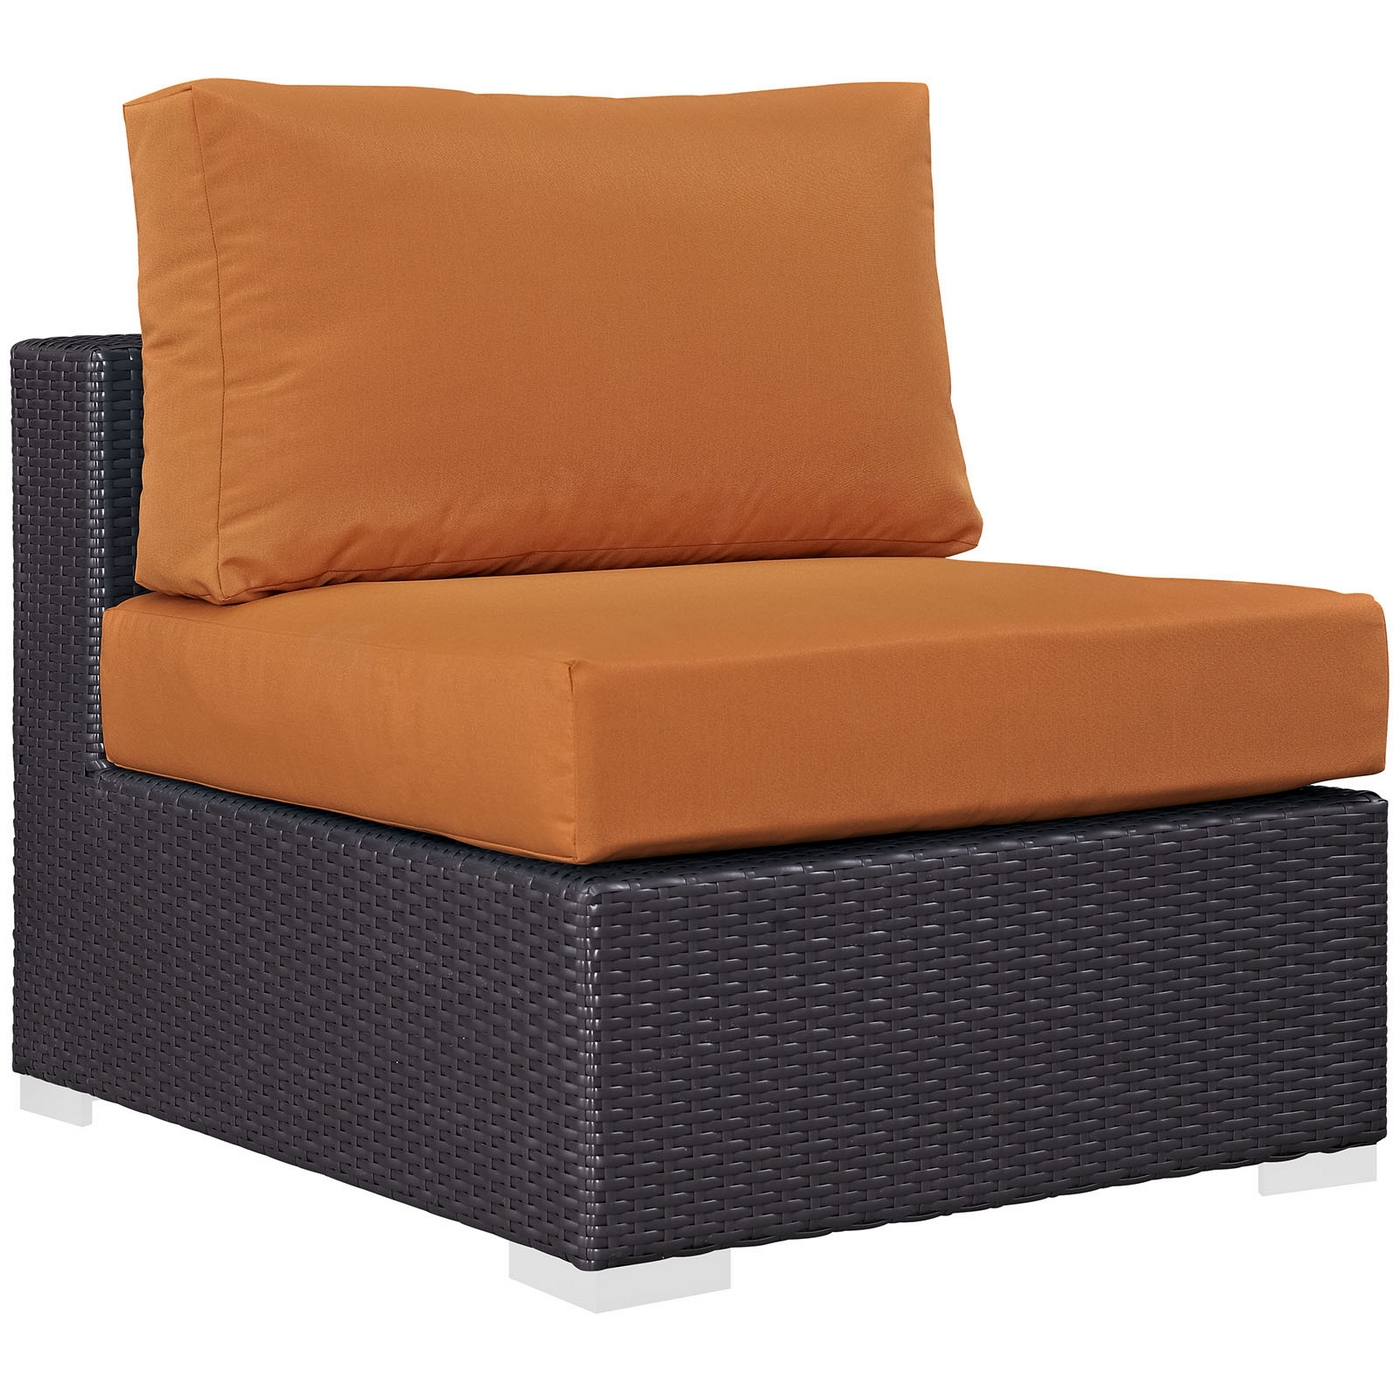 Convene Contemporary Rattan Outdoor Patio Armless Chair Cushions